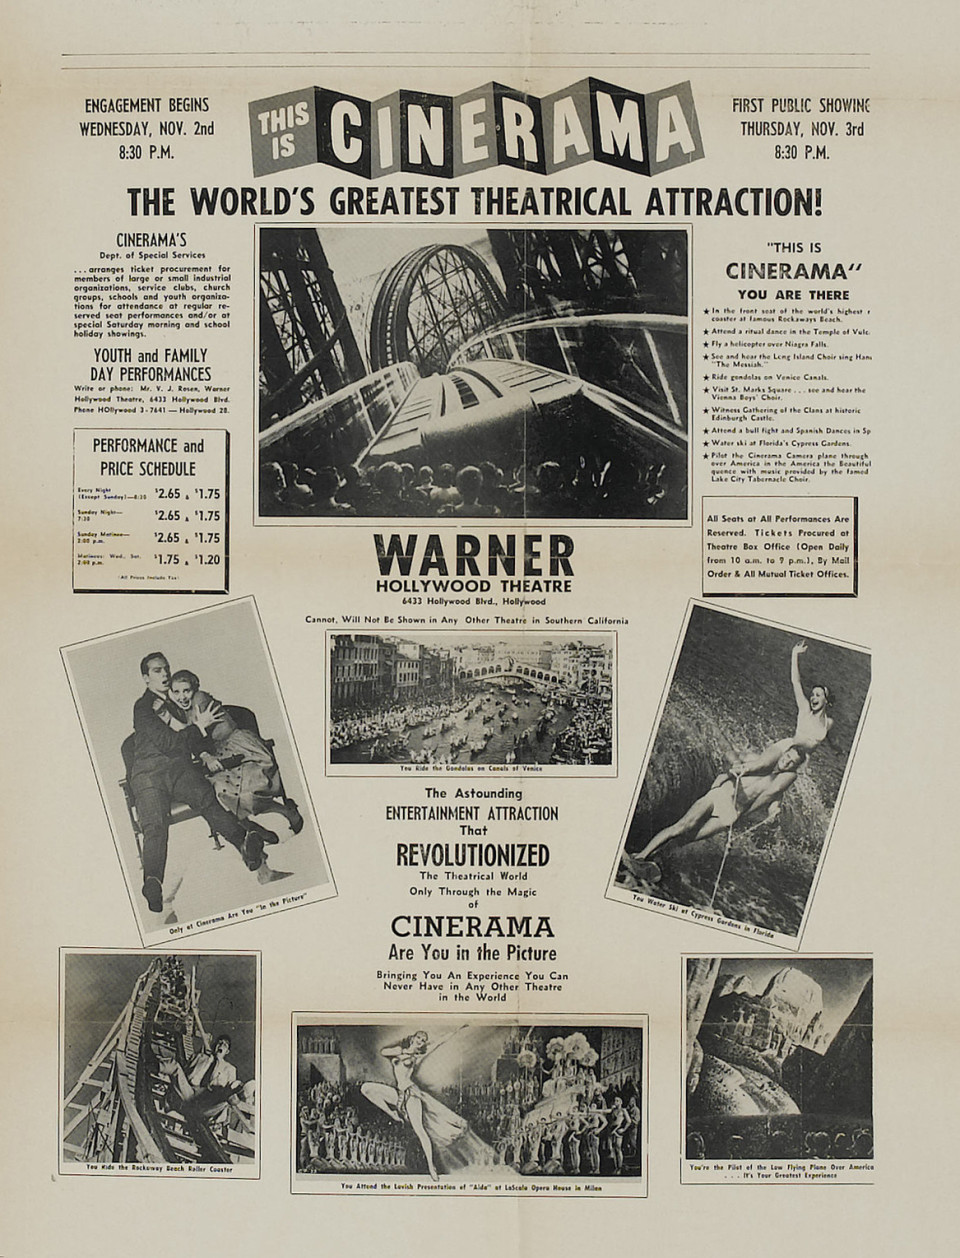 003-Cinerama-Hollywood poster